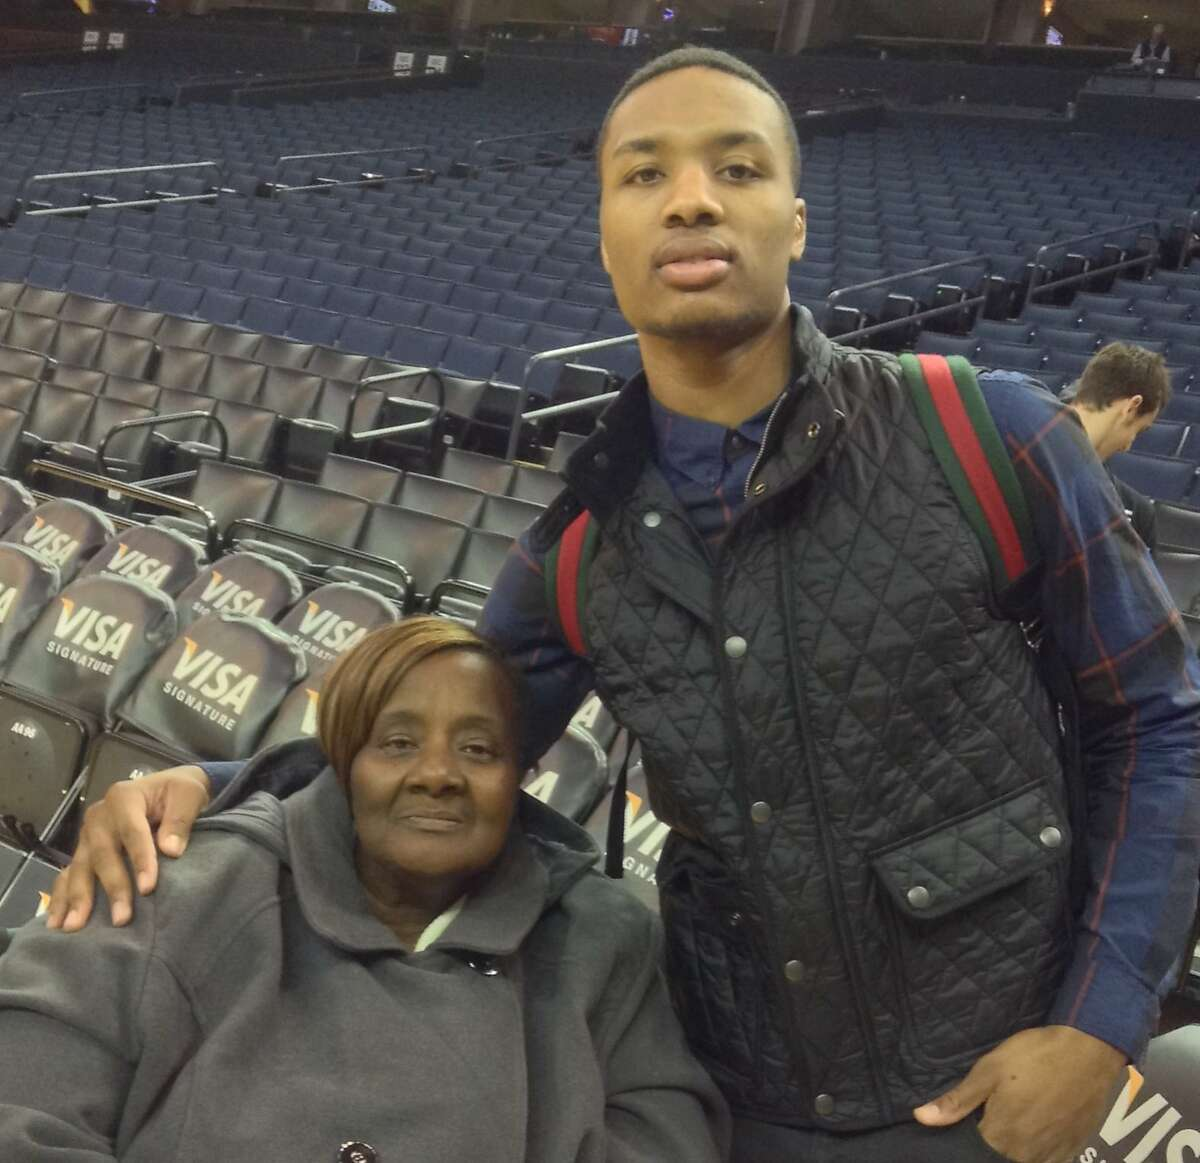 Portland Trailblazer and Oakland native Damian Lillard is seen with his grandmother, Cecelia Johnson, at Oracle Arena in Oakland.